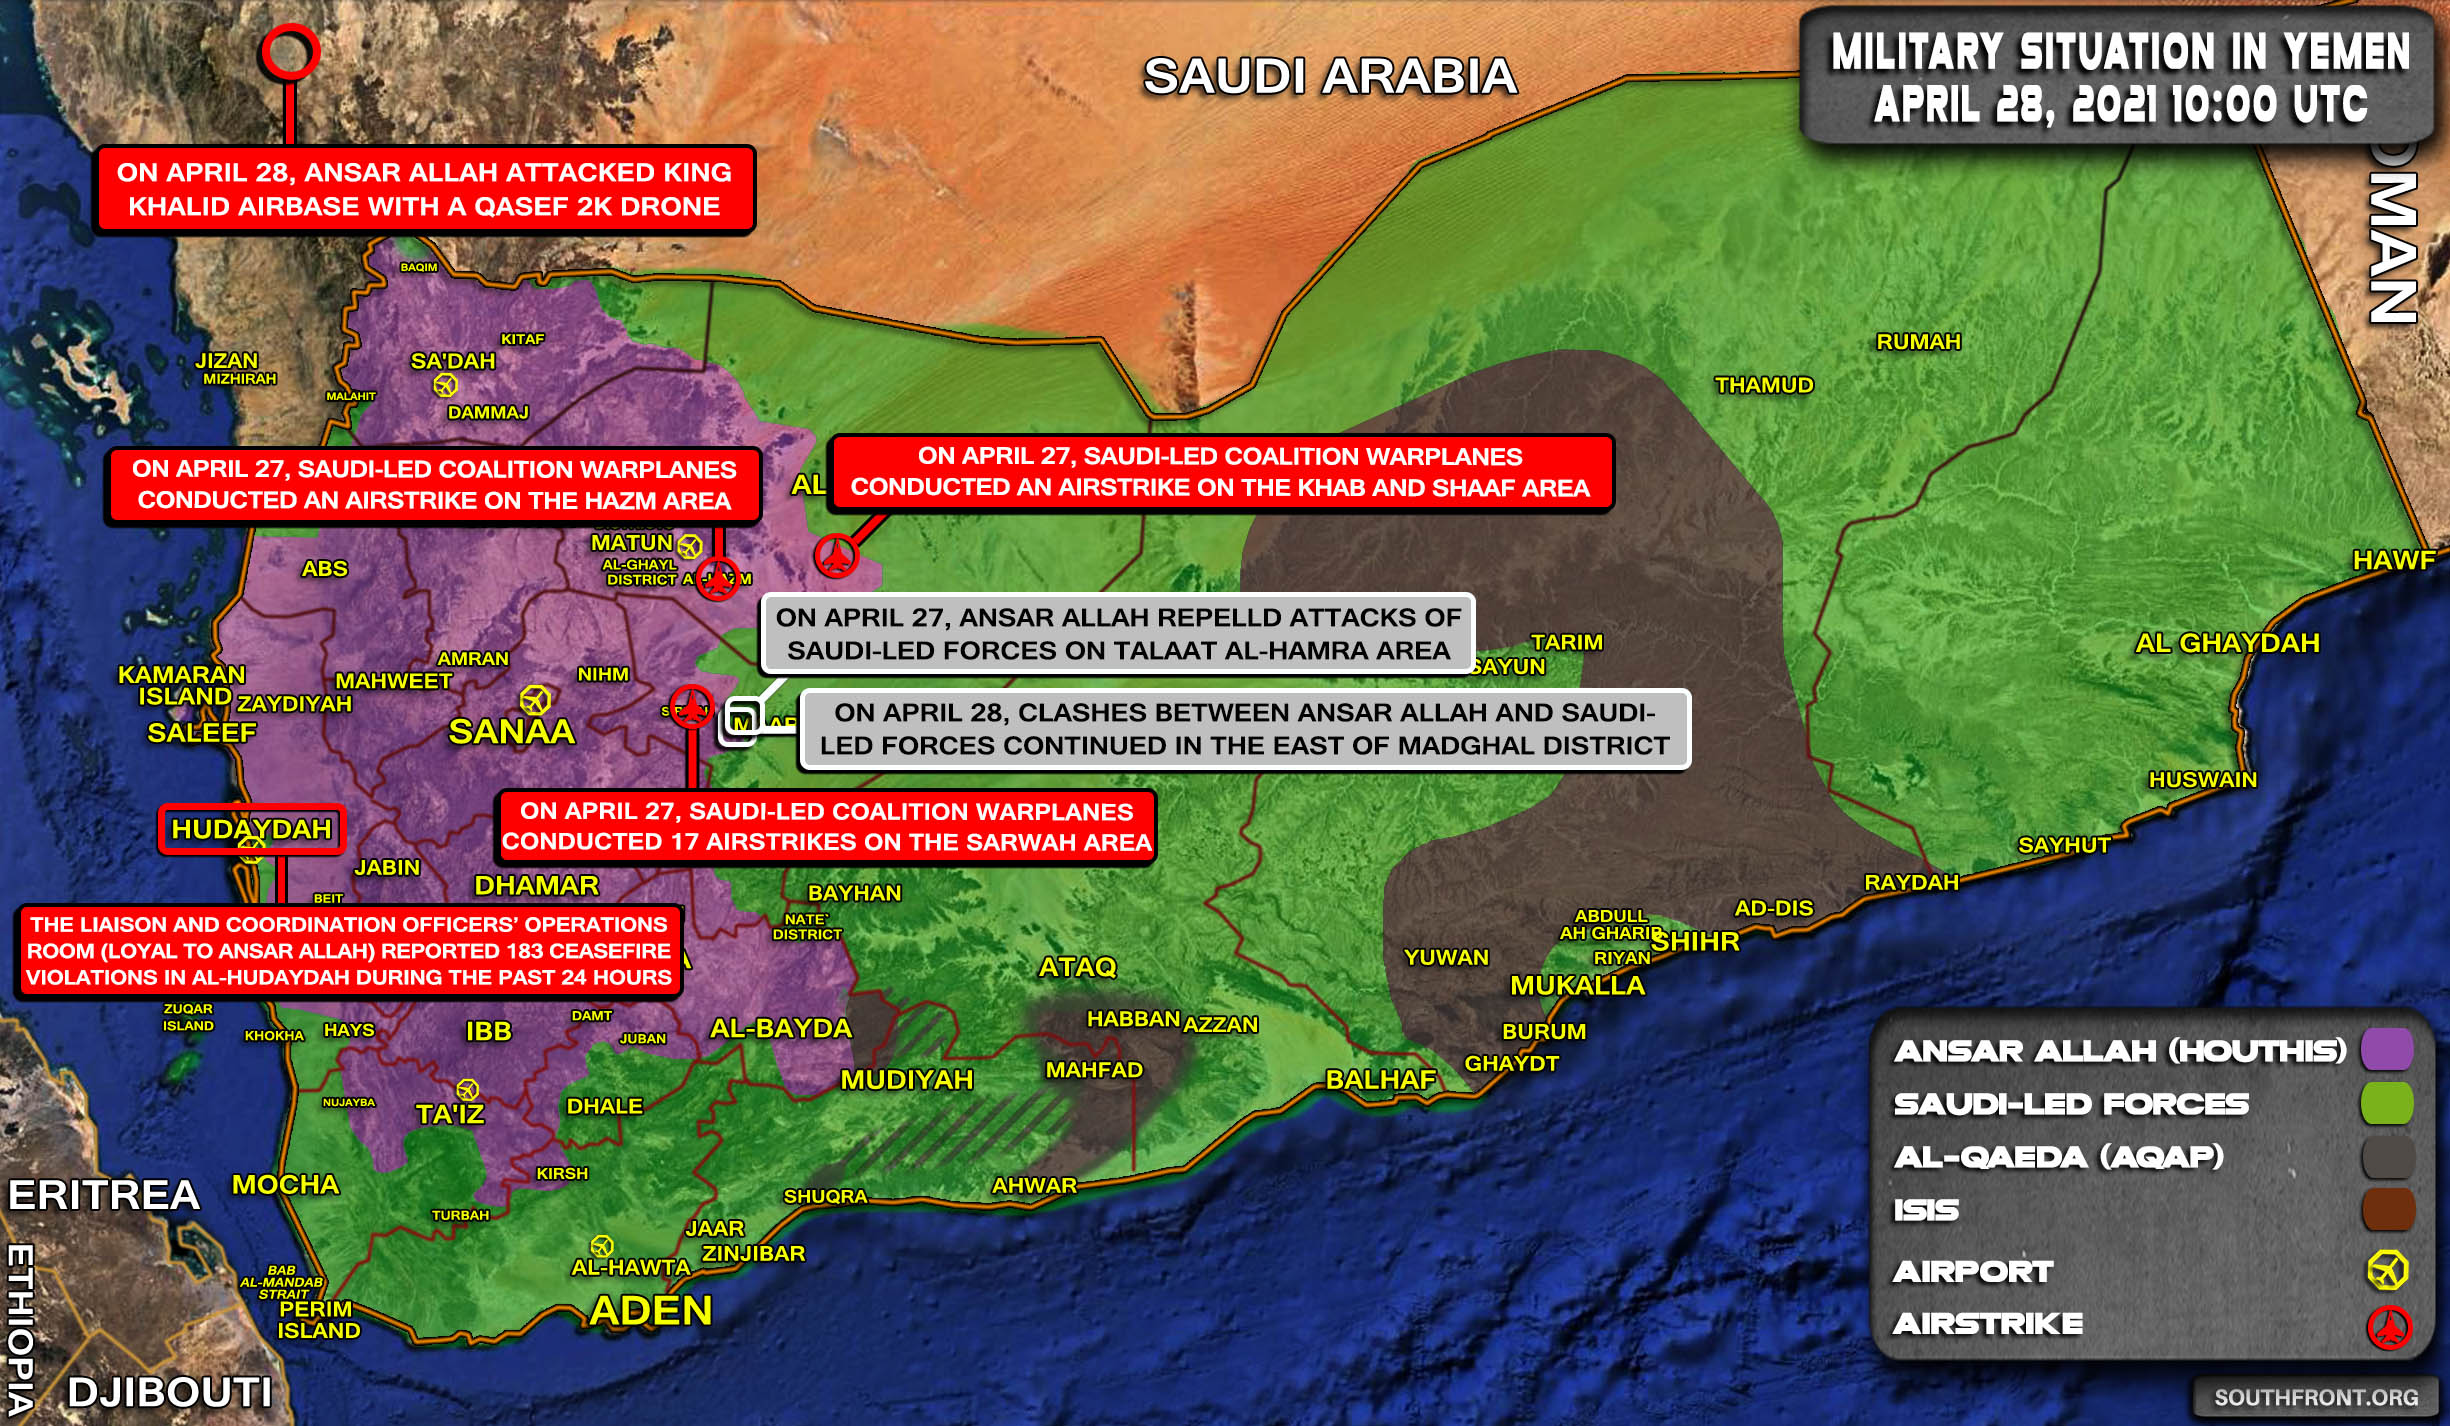 Military Situation In Yemen On April 28, 2021 (Map Update)